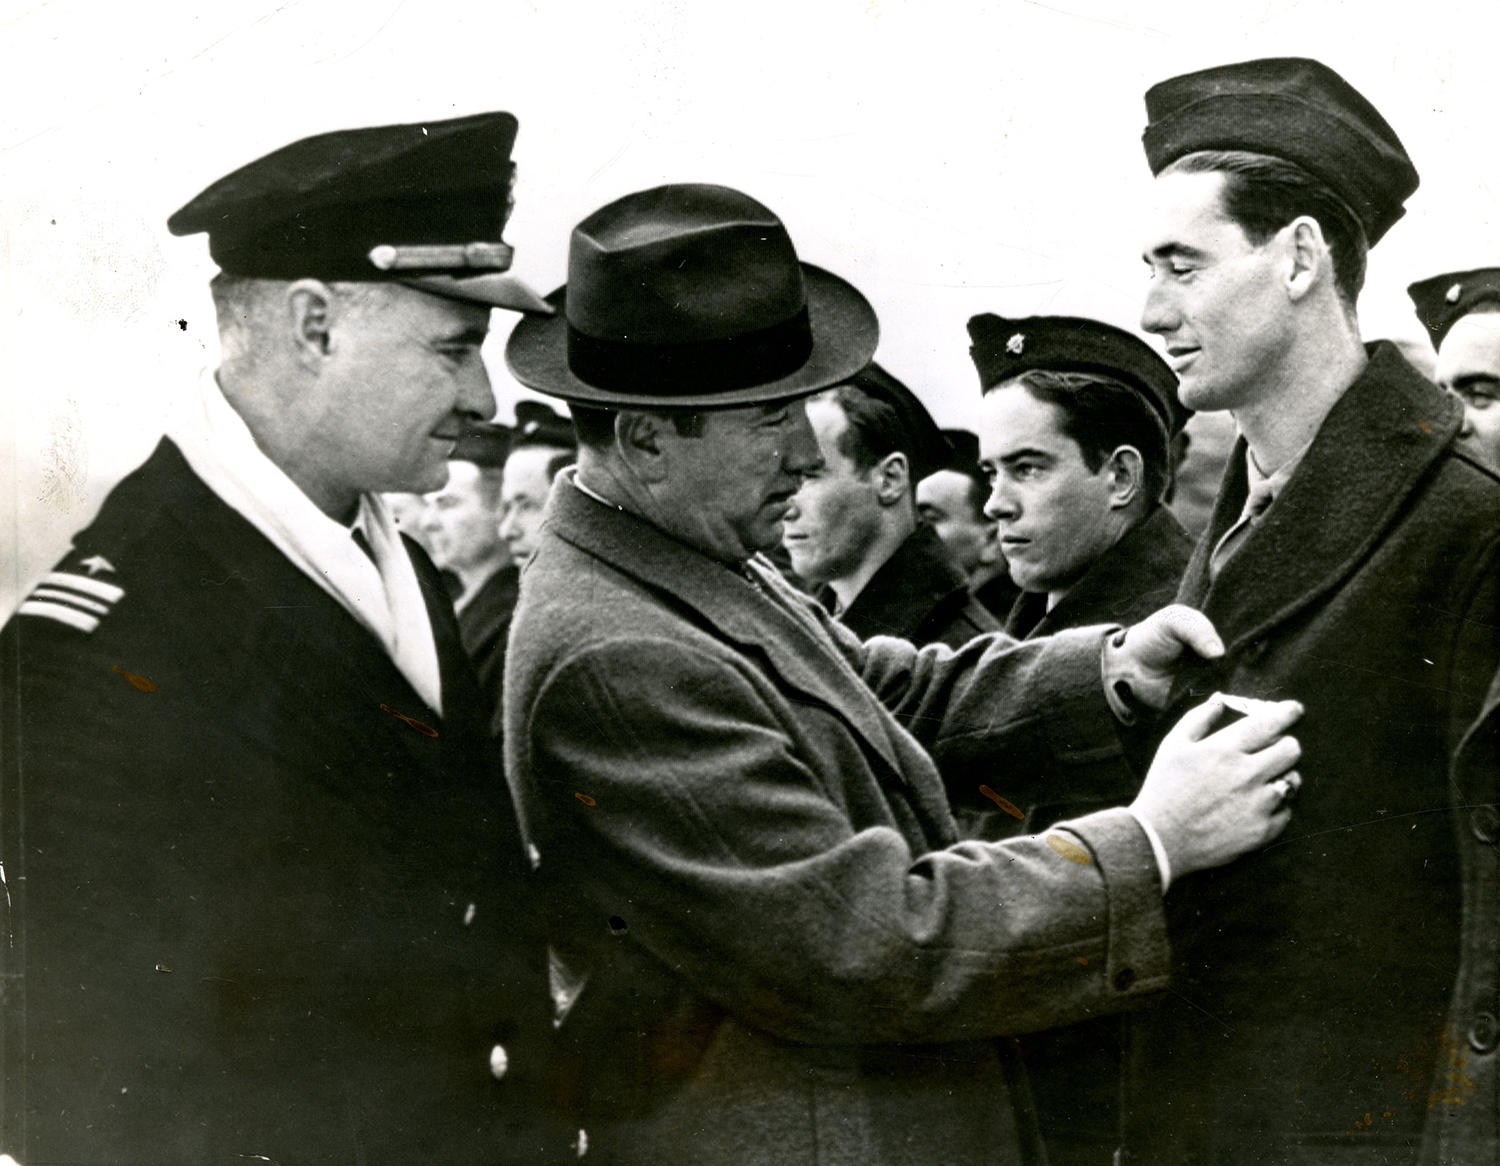 "Ted Williams was one of only 10 percent of World War II era Navy flyers to receive their wings and finished top in his class at flight school. <a href=""http://collection.baseballhall.org/islandora/object/islandora%3A501834"">PASTIME</a> (National Baseball Hall of Fame)"